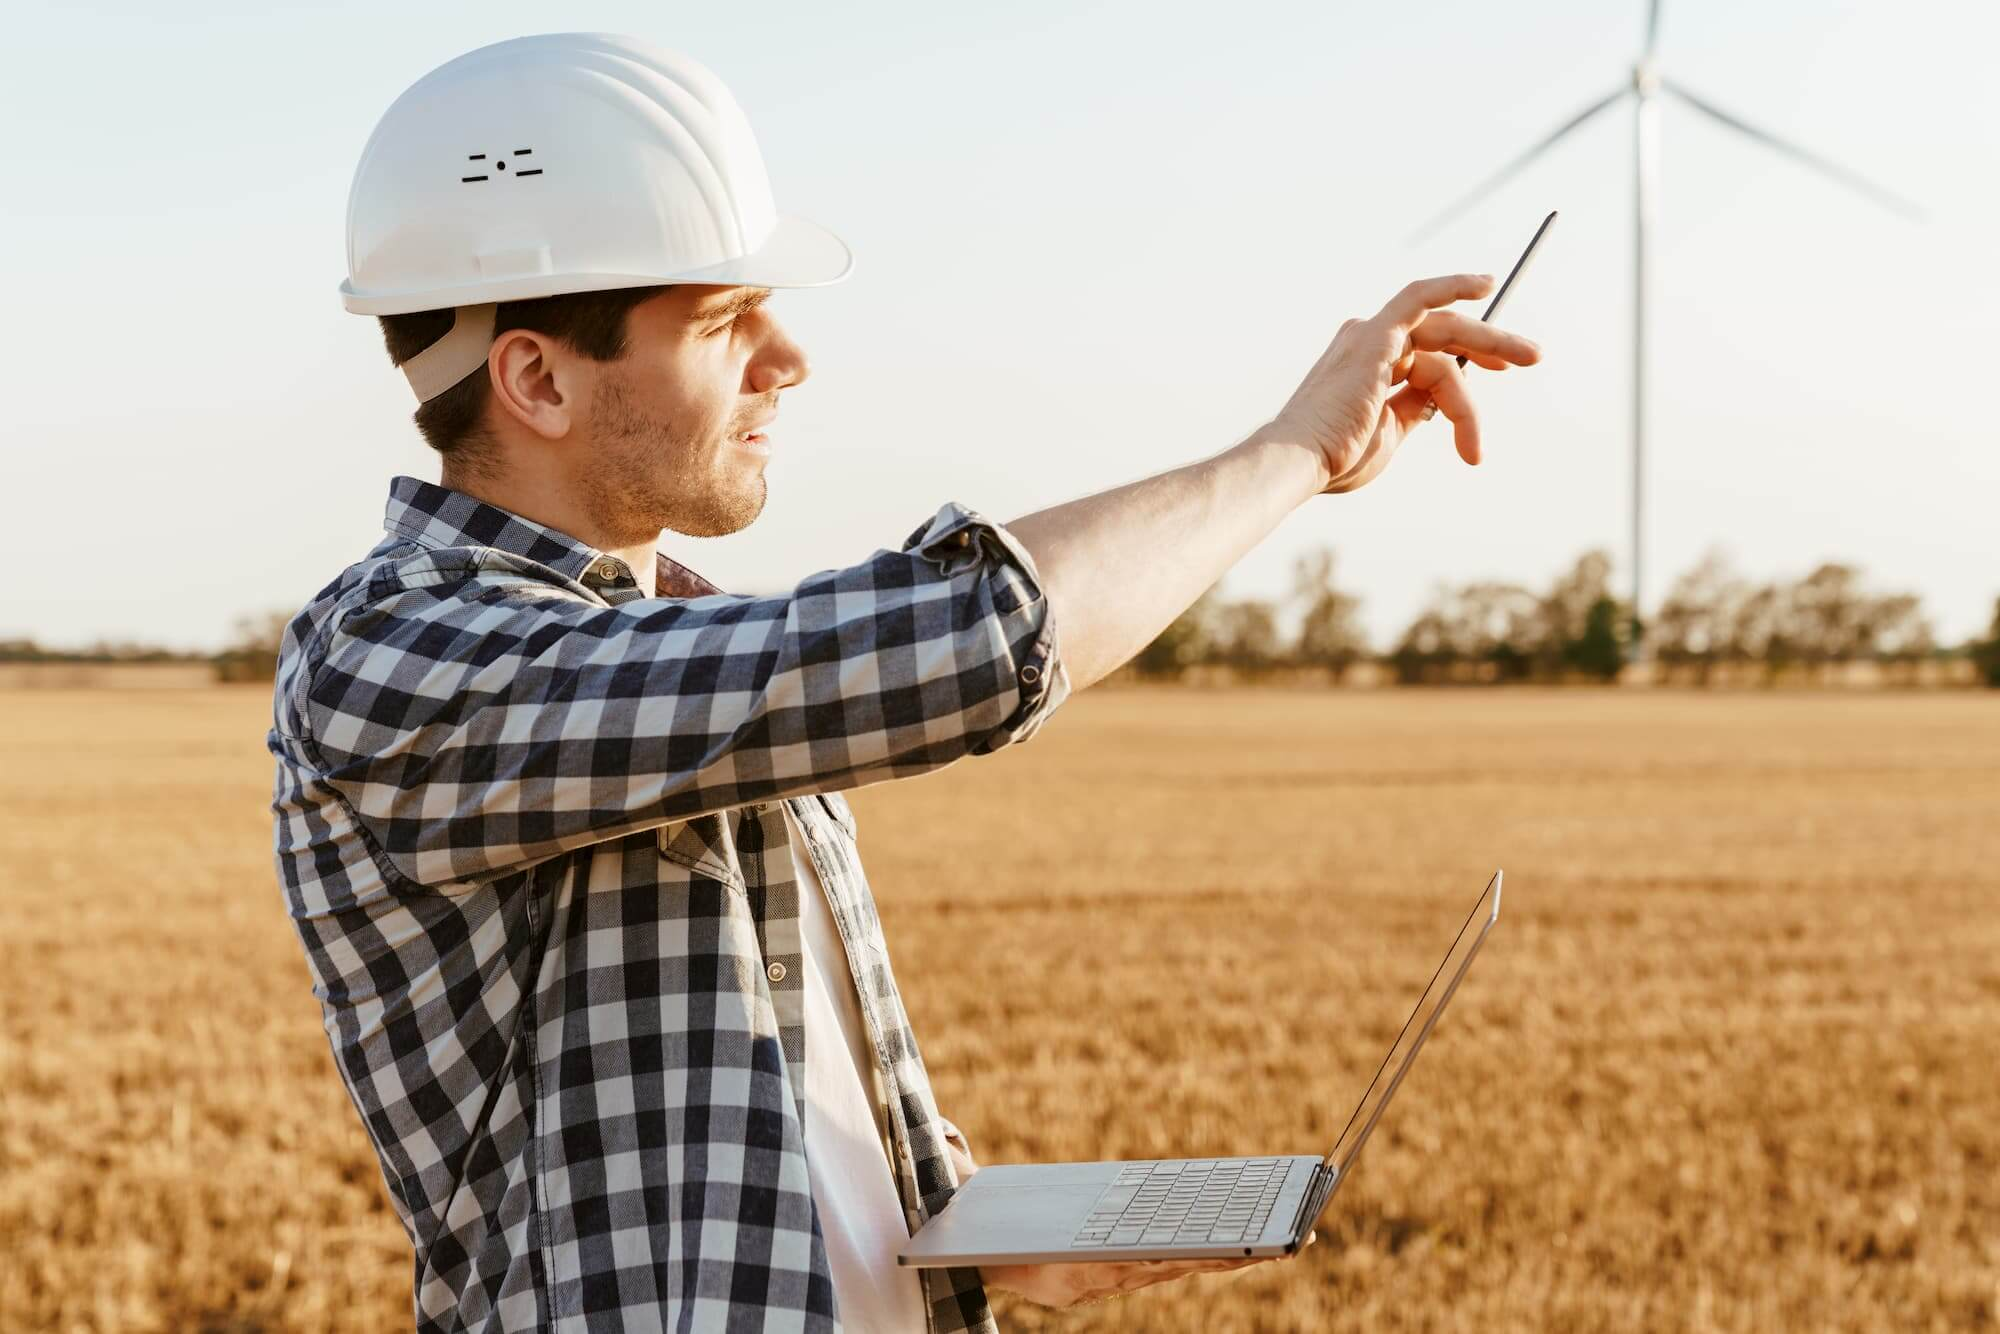 An electrical engineer standing on a field with wi fqptvat 1 : windesco : windesco